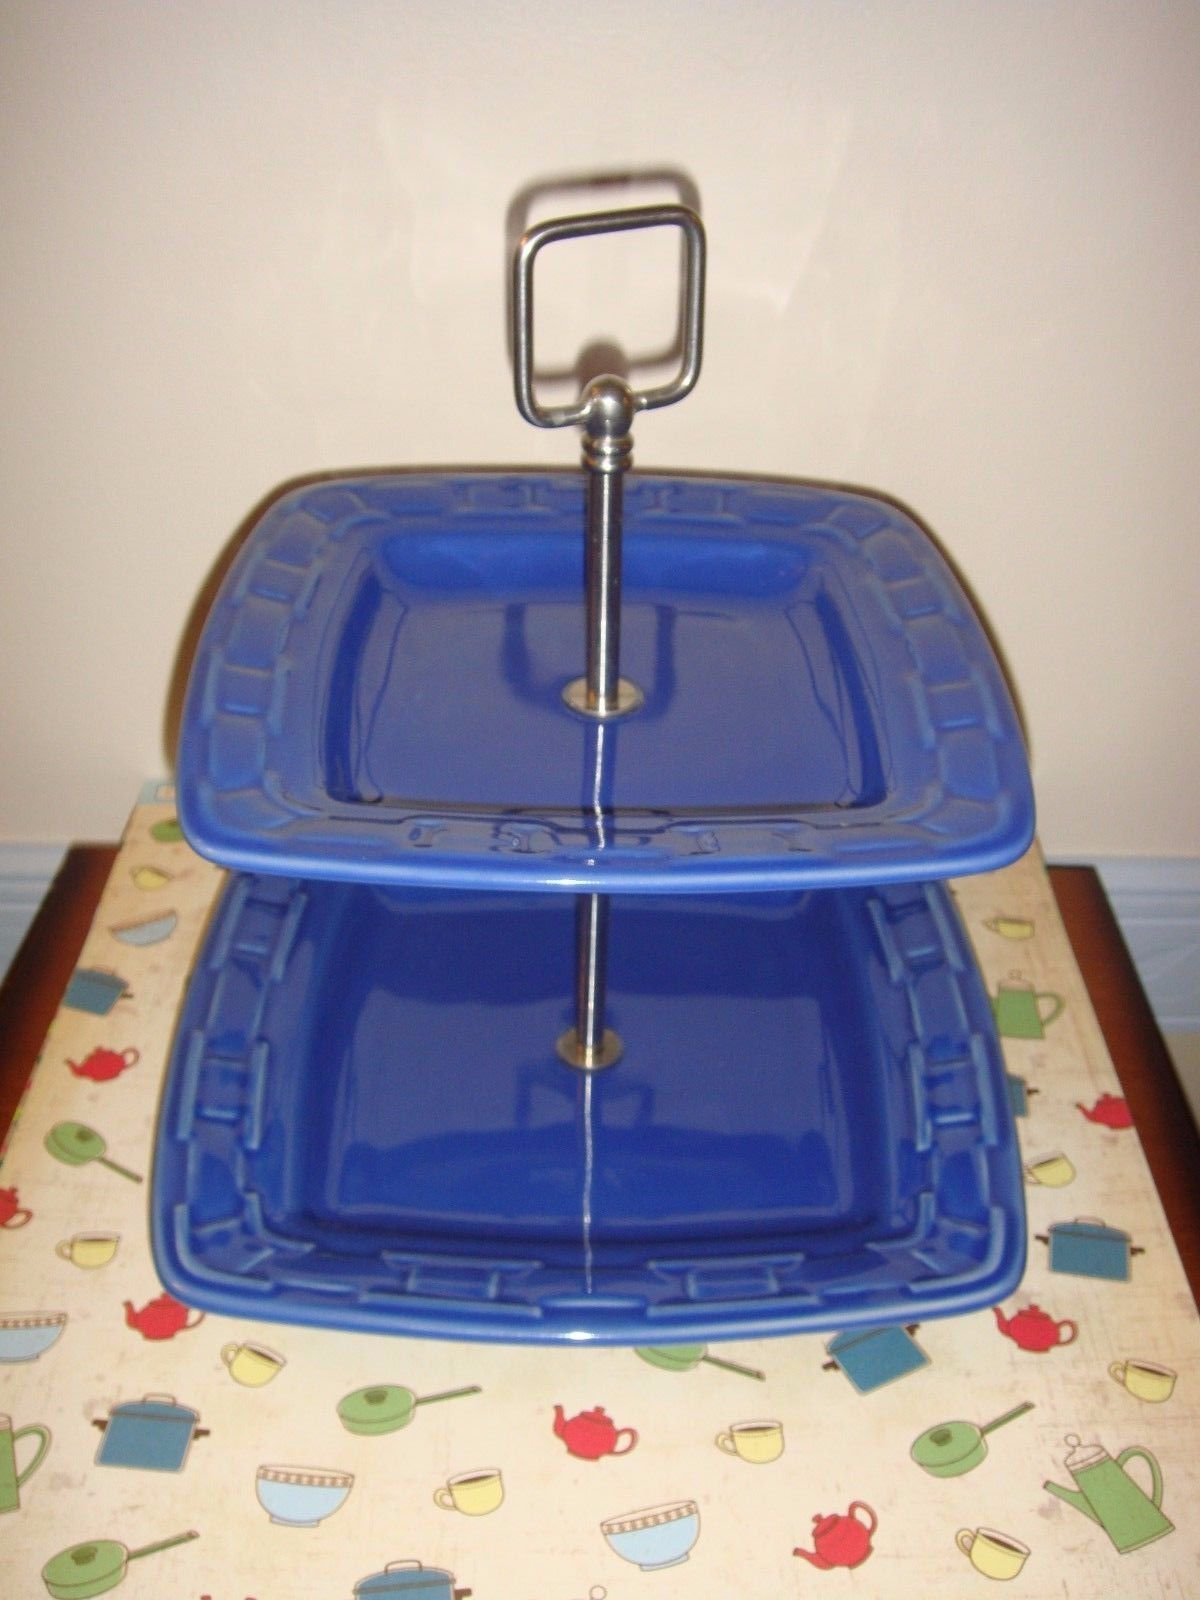 Longaberger Pottery Square Woven Tradition Two-Tier Serving Stand Cornflower - $32.99